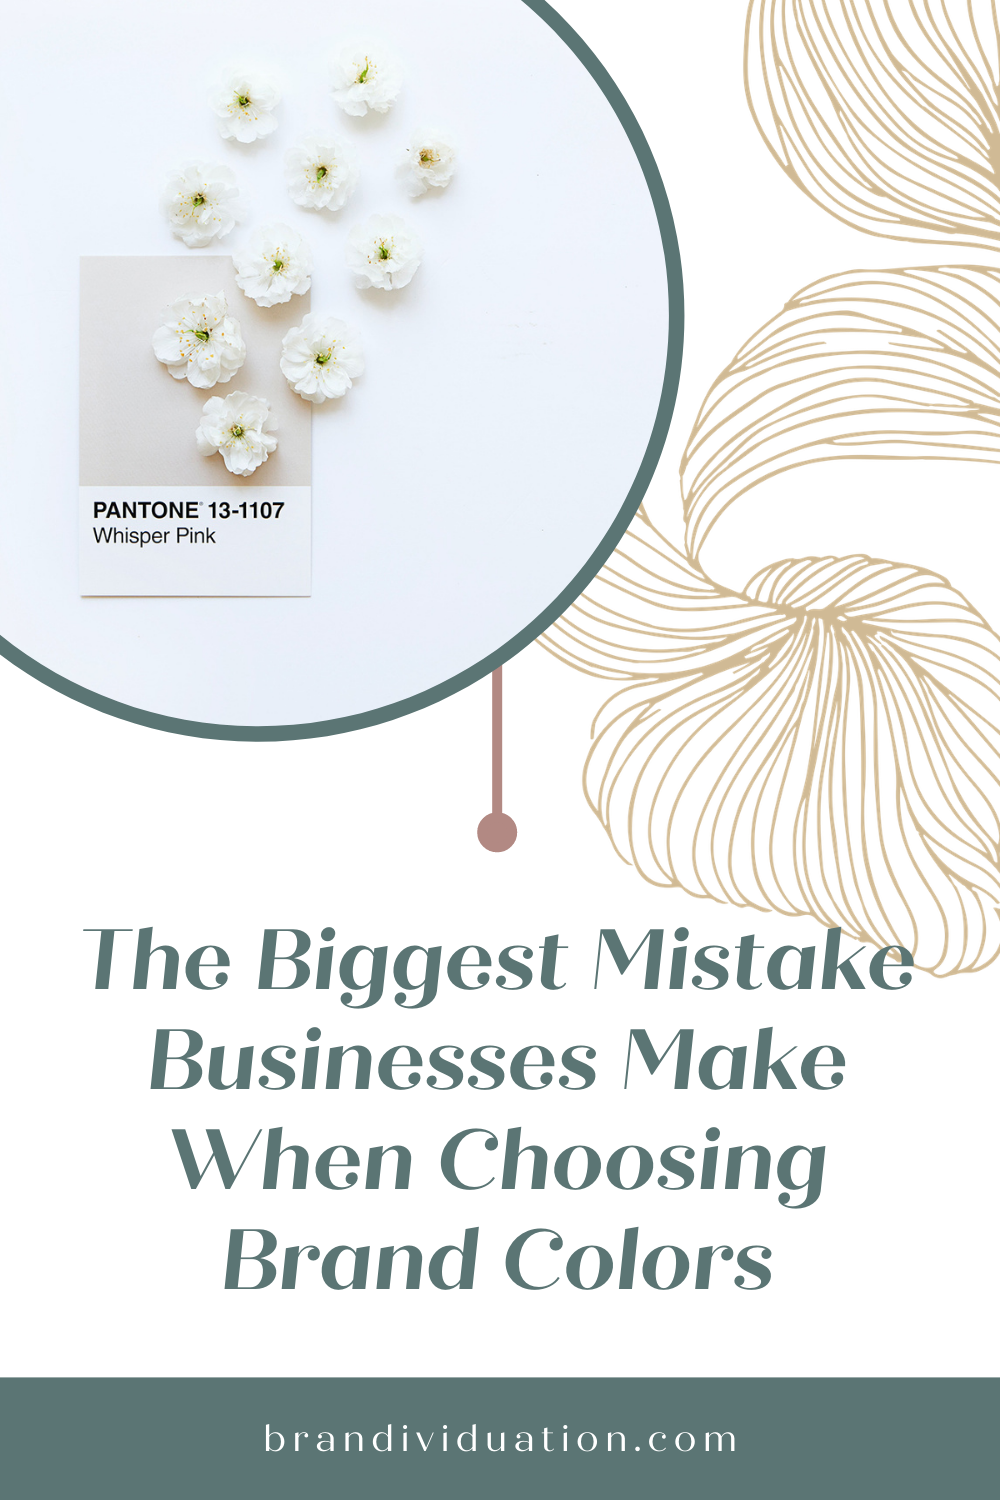 The Biggest Mistake Businesses Make When Choosing Brand Colors